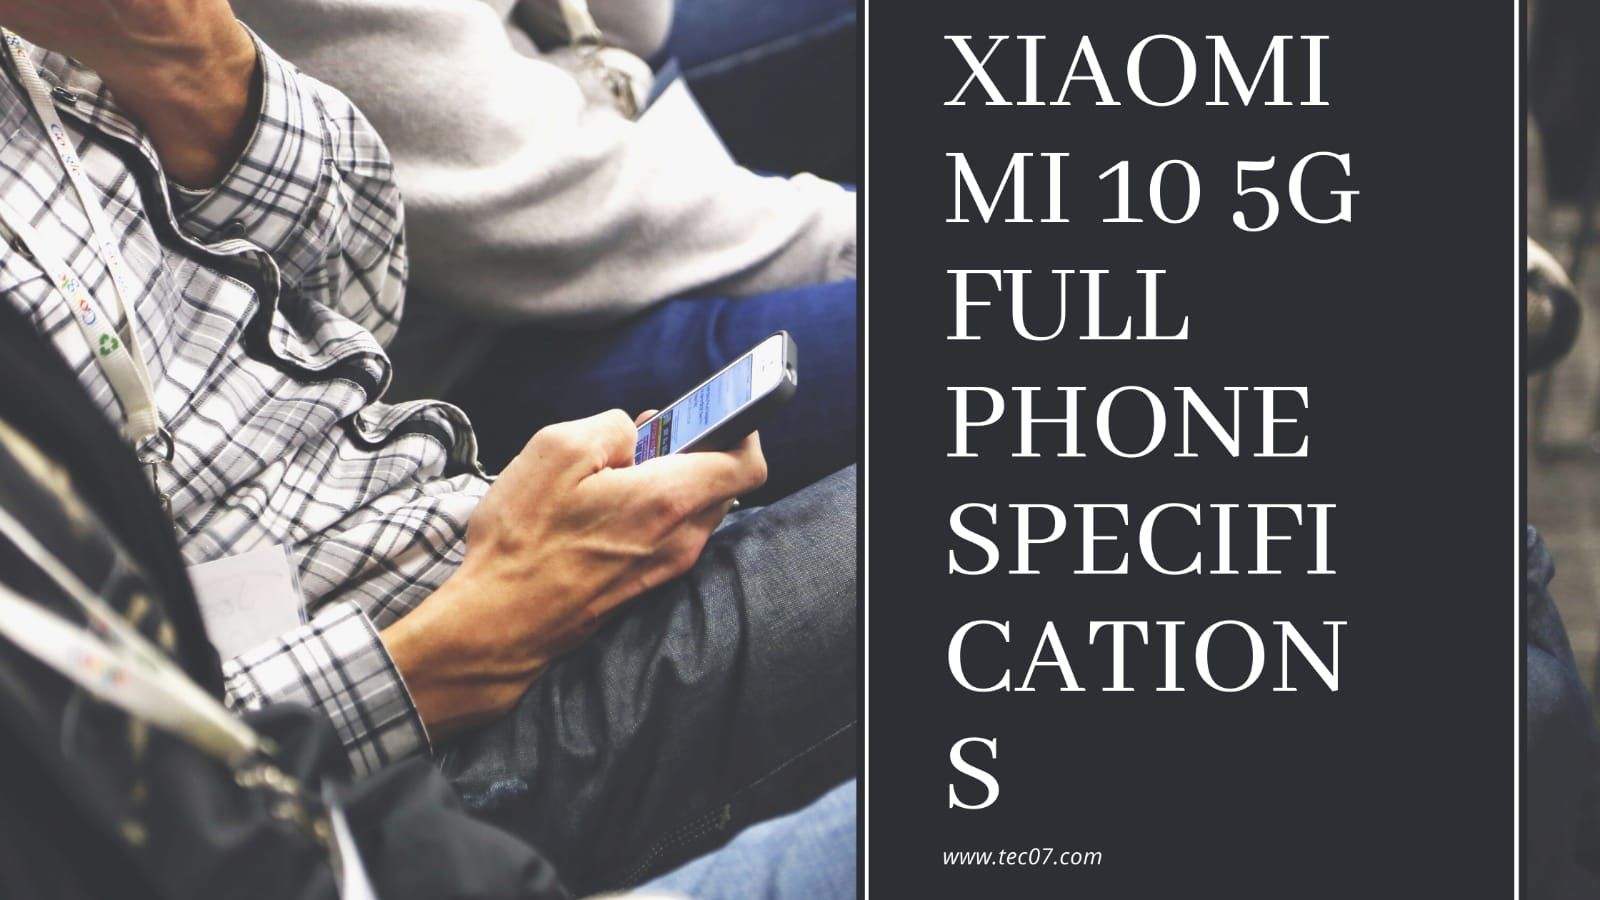 Xiaomi Mi 10 5G – Full phone specifications